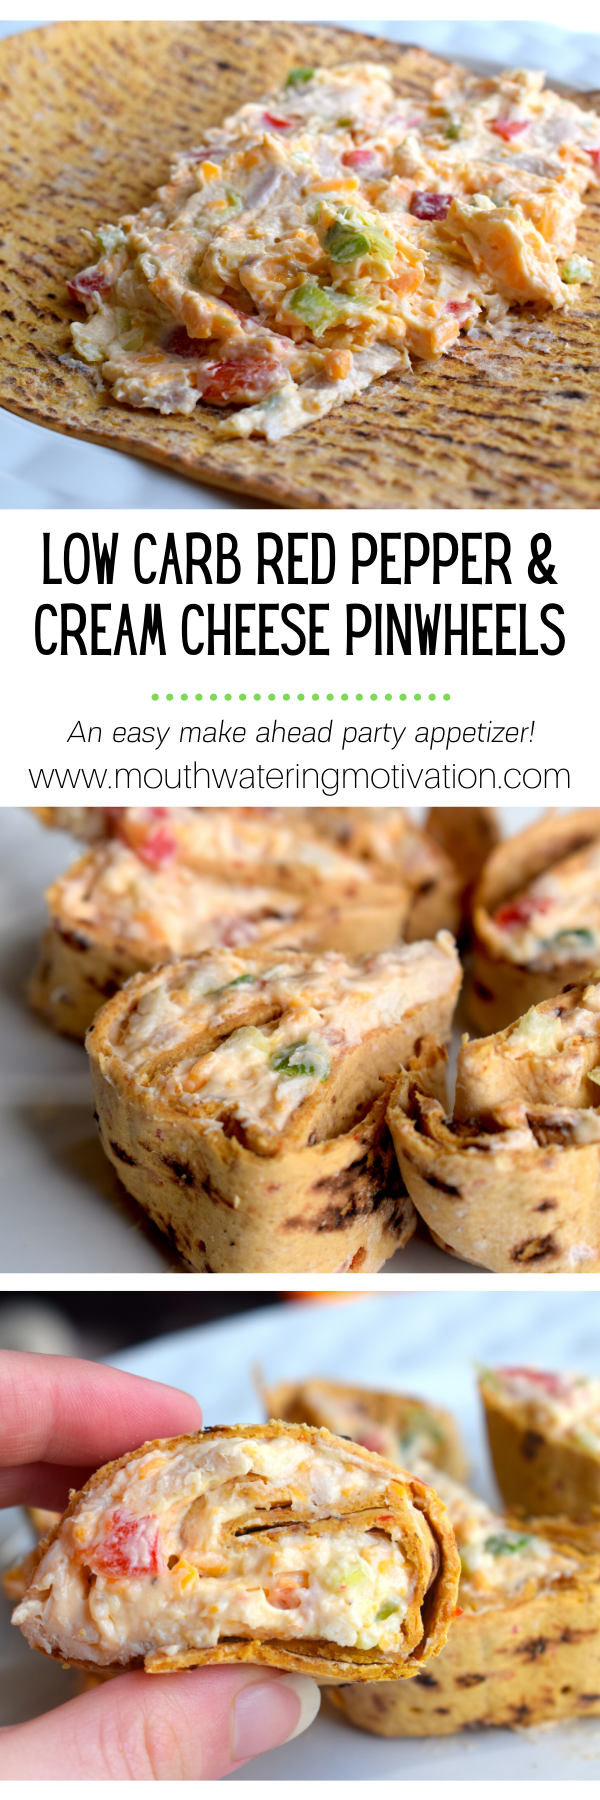 Low Carb Red Pepper & Cream Cheese Pinwheels